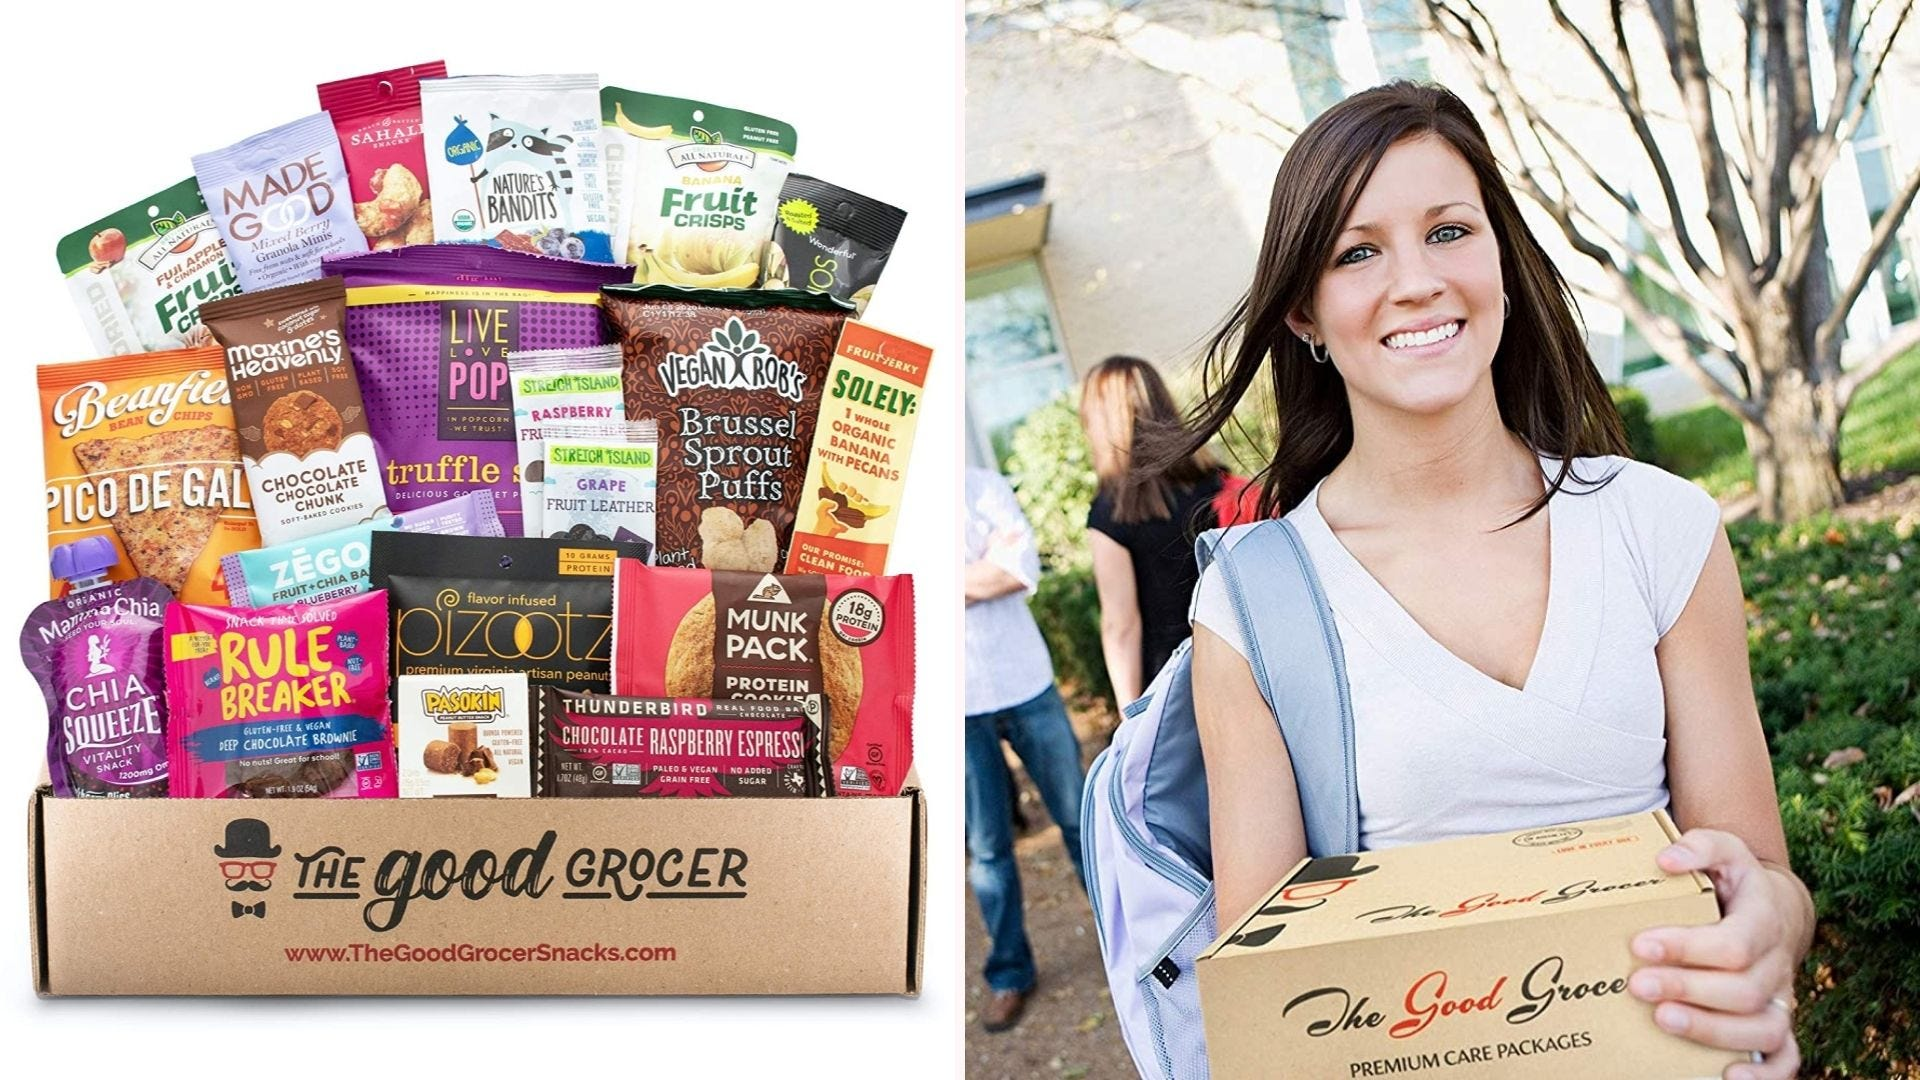 On the left, 20 health-conscious snacks sit in their cardboard packaging. On the left, a student walks across campus with the care package.